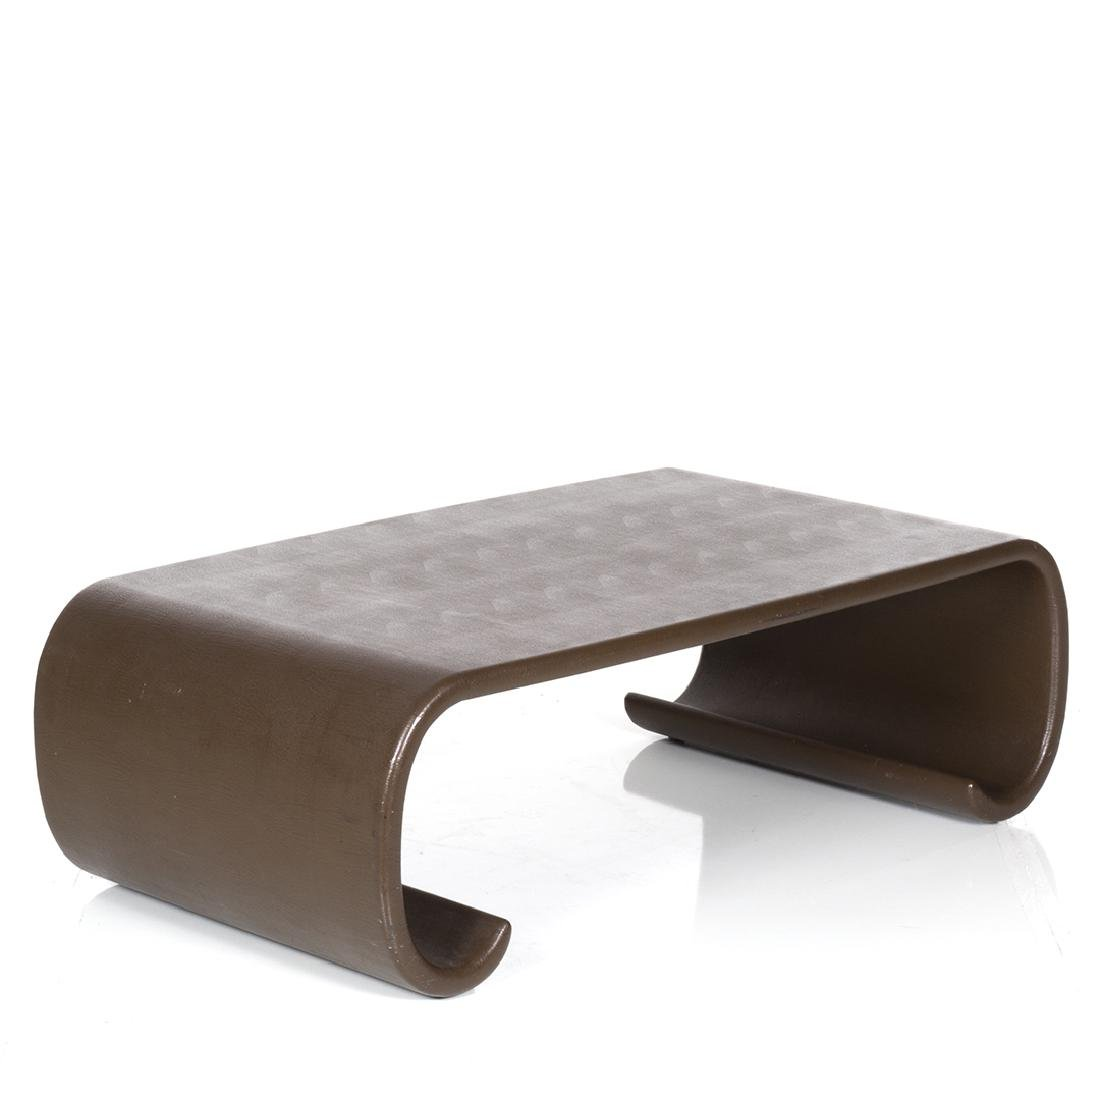 Karl Springer Leather Scroll Coffee Table - 2